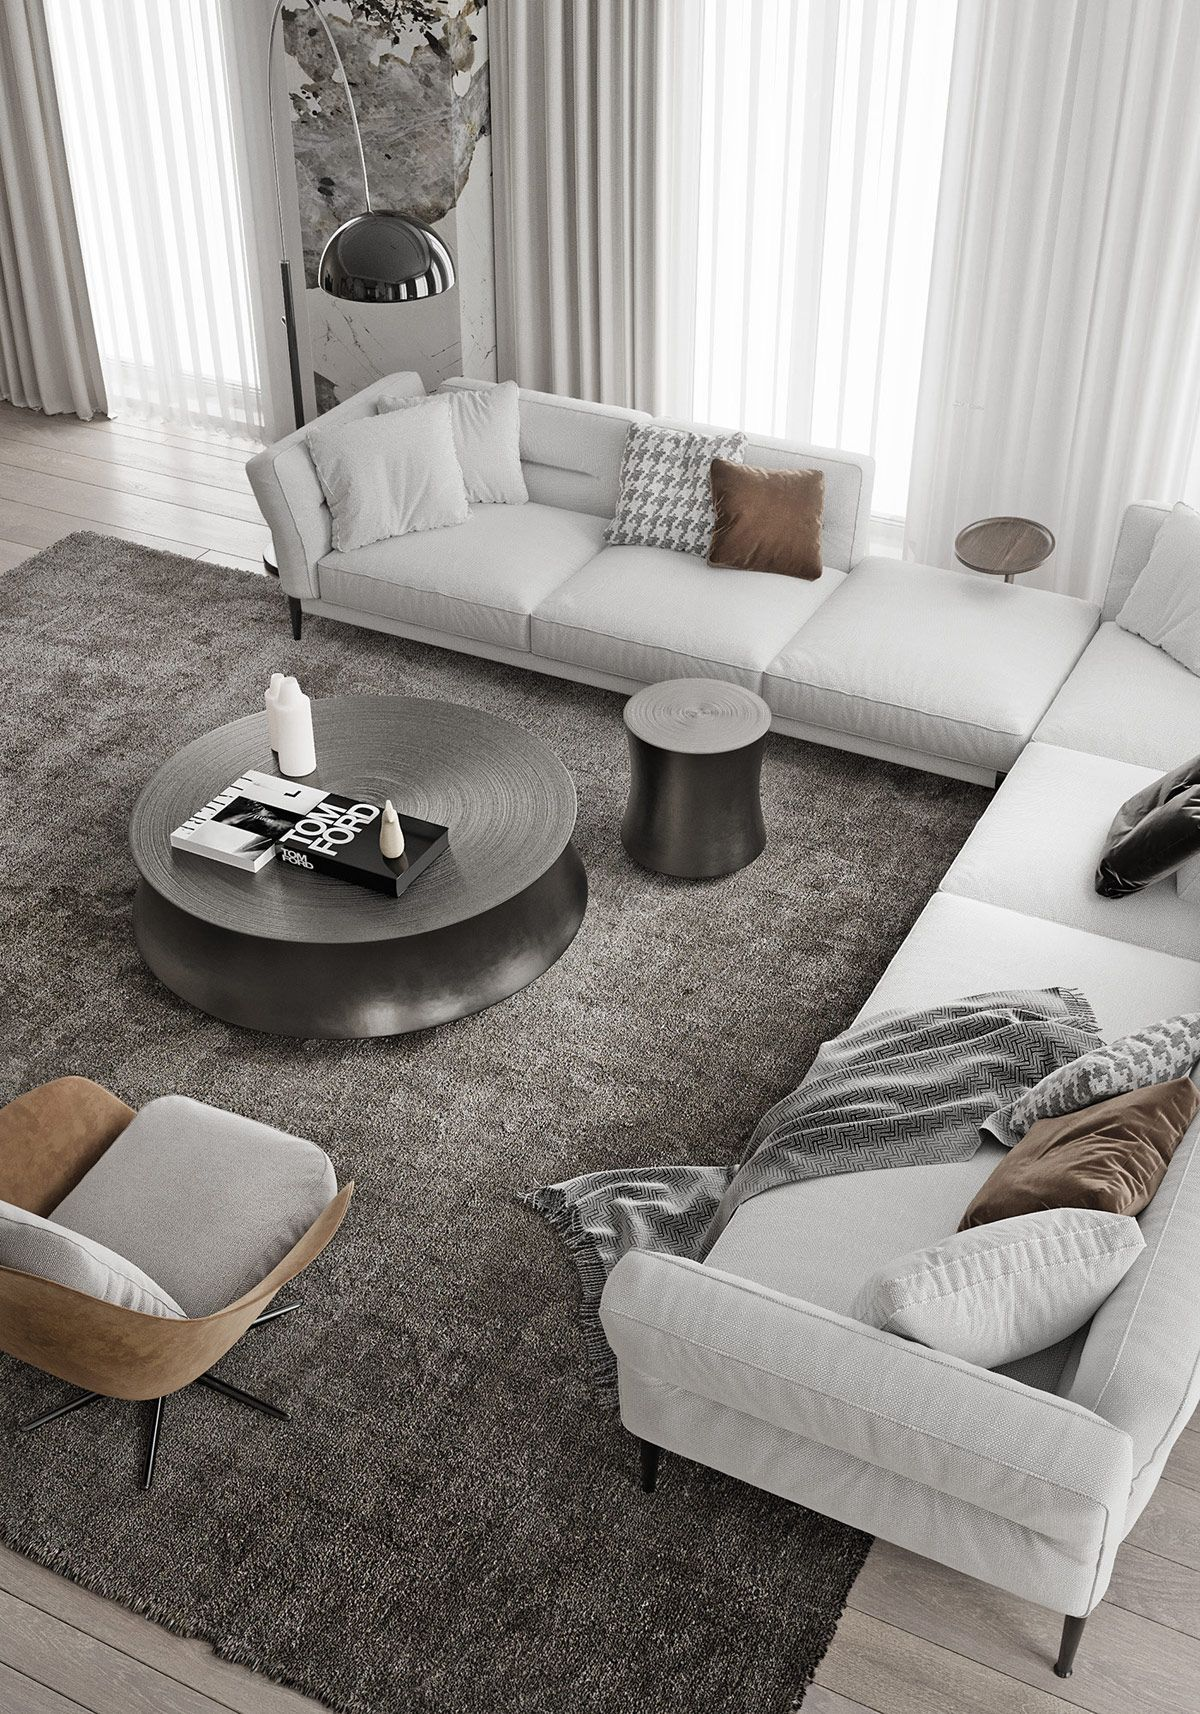 Magnificent Modern Marble Interior With Metallic Accents Magnificent Modern Marble Interior With In 2020 Luxury Dining Room Marble Interior Modern White Living Room Metallic living room decor